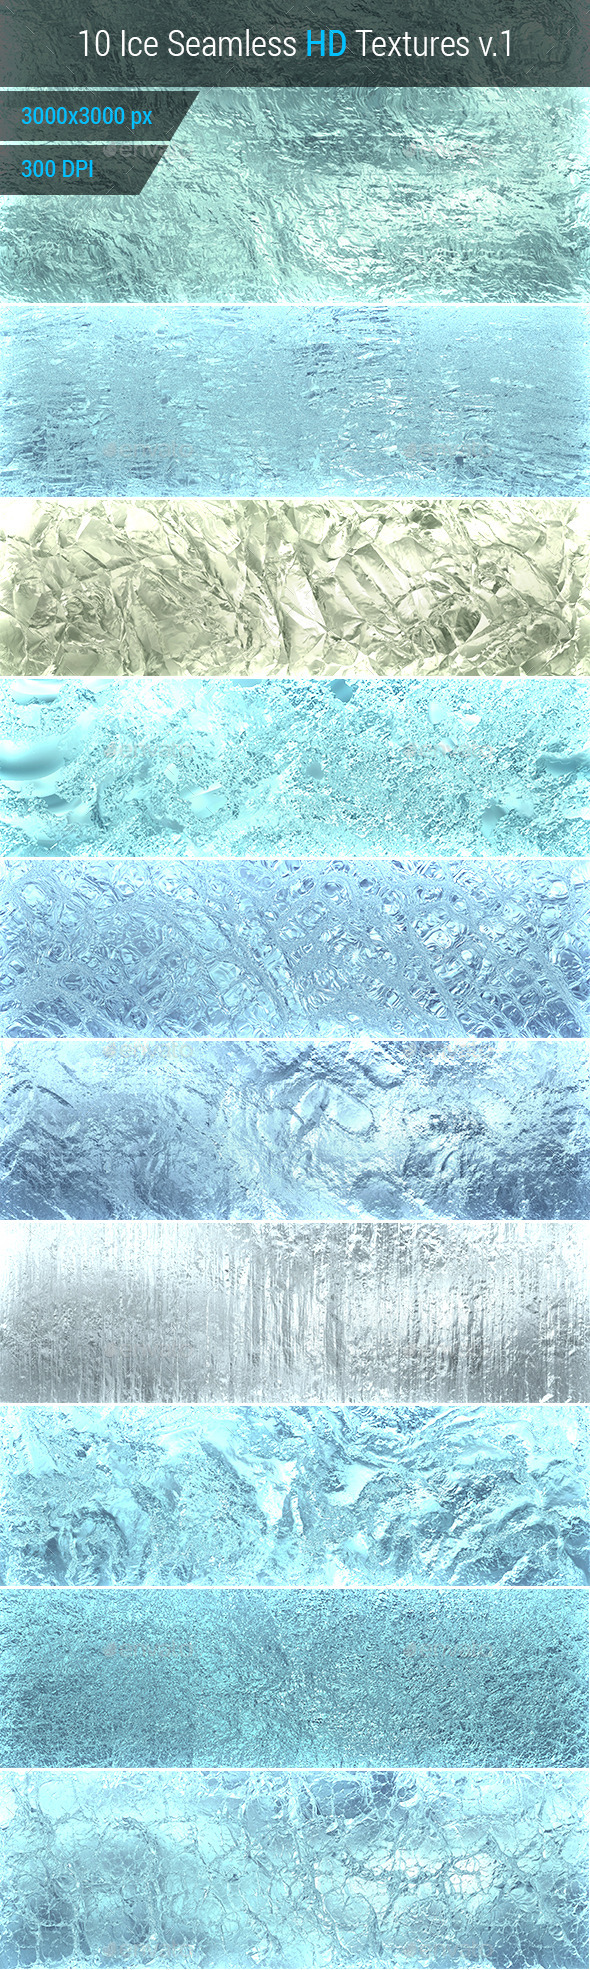 GraphicRiver Ice Seamless and Tileable Background Texture v.1 10193442